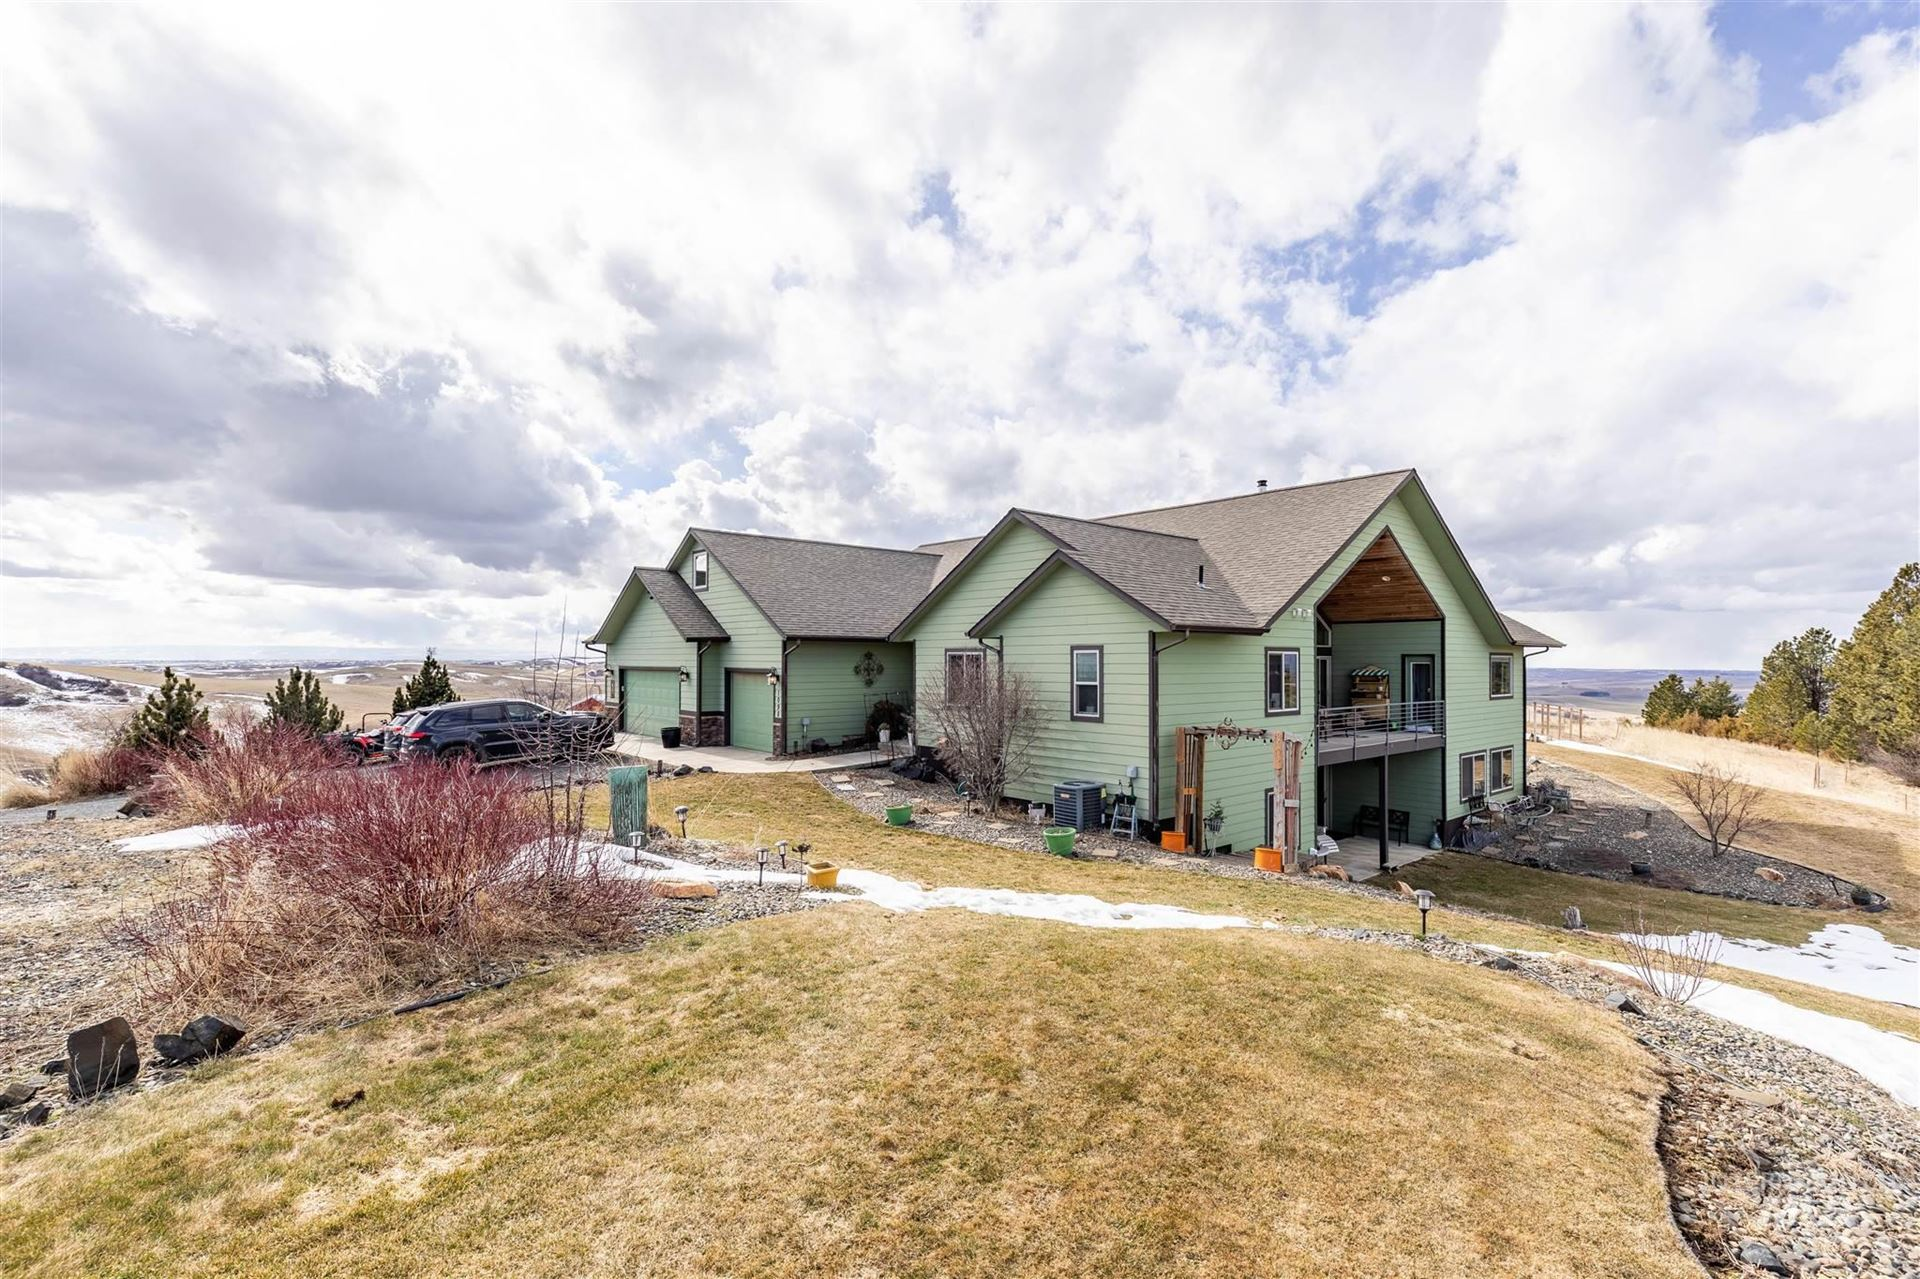 Photo of 1098 Eid rd, Moscow, ID 83843 (MLS # 98804717)